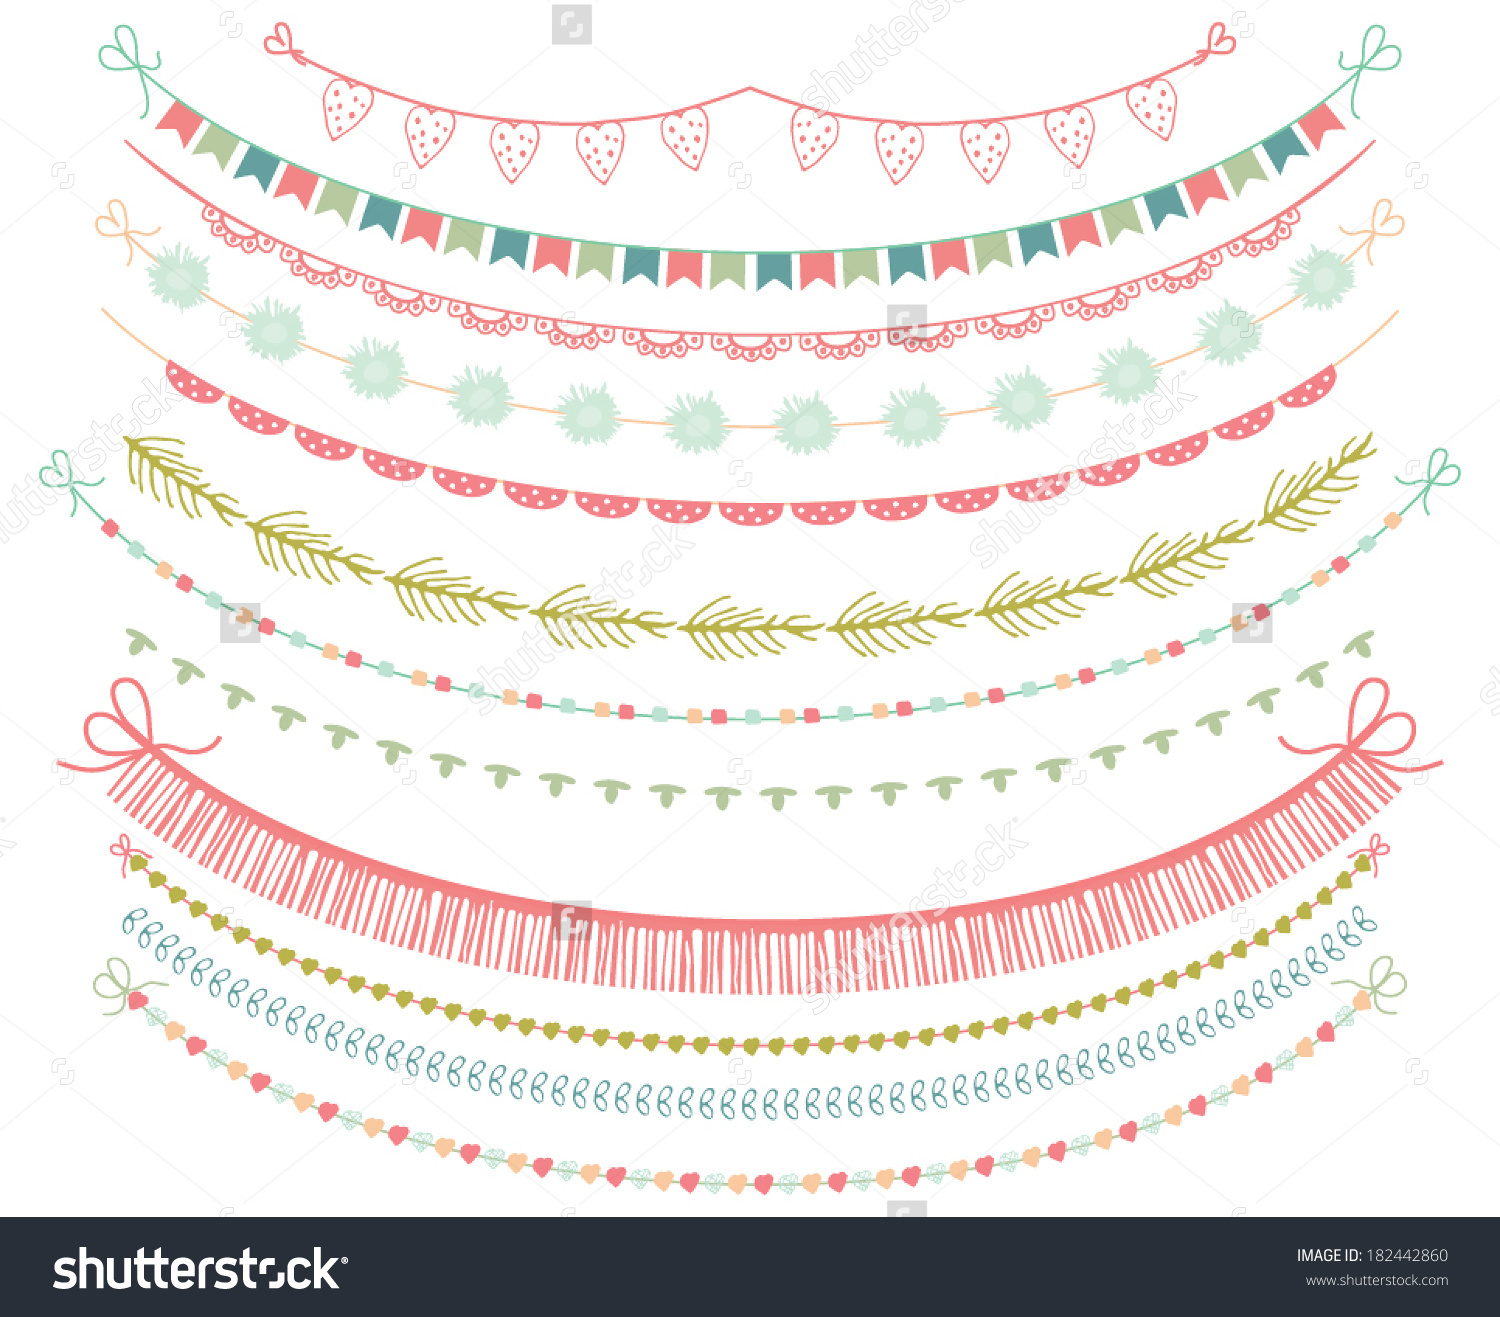 Garlands Bunting Flags Clipart On White Stock Vector 182442860.